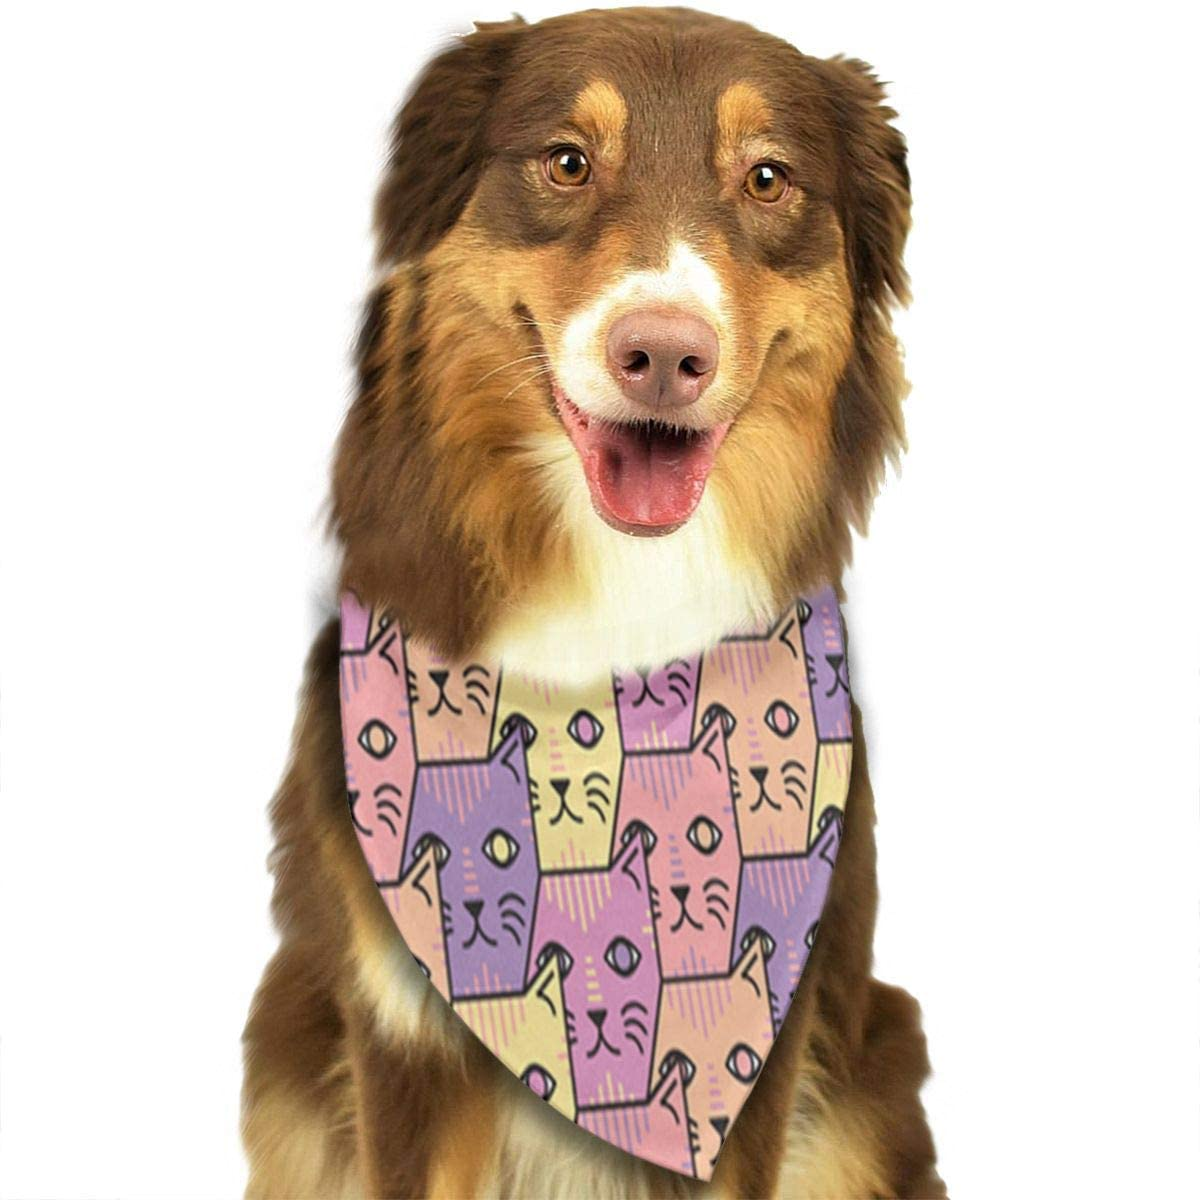 CHAN03 Dogs Bandana Collars Cute Cats Pets Triangle Neckerchief Puppy Bibs Scarfs Cats Scarfs Towel